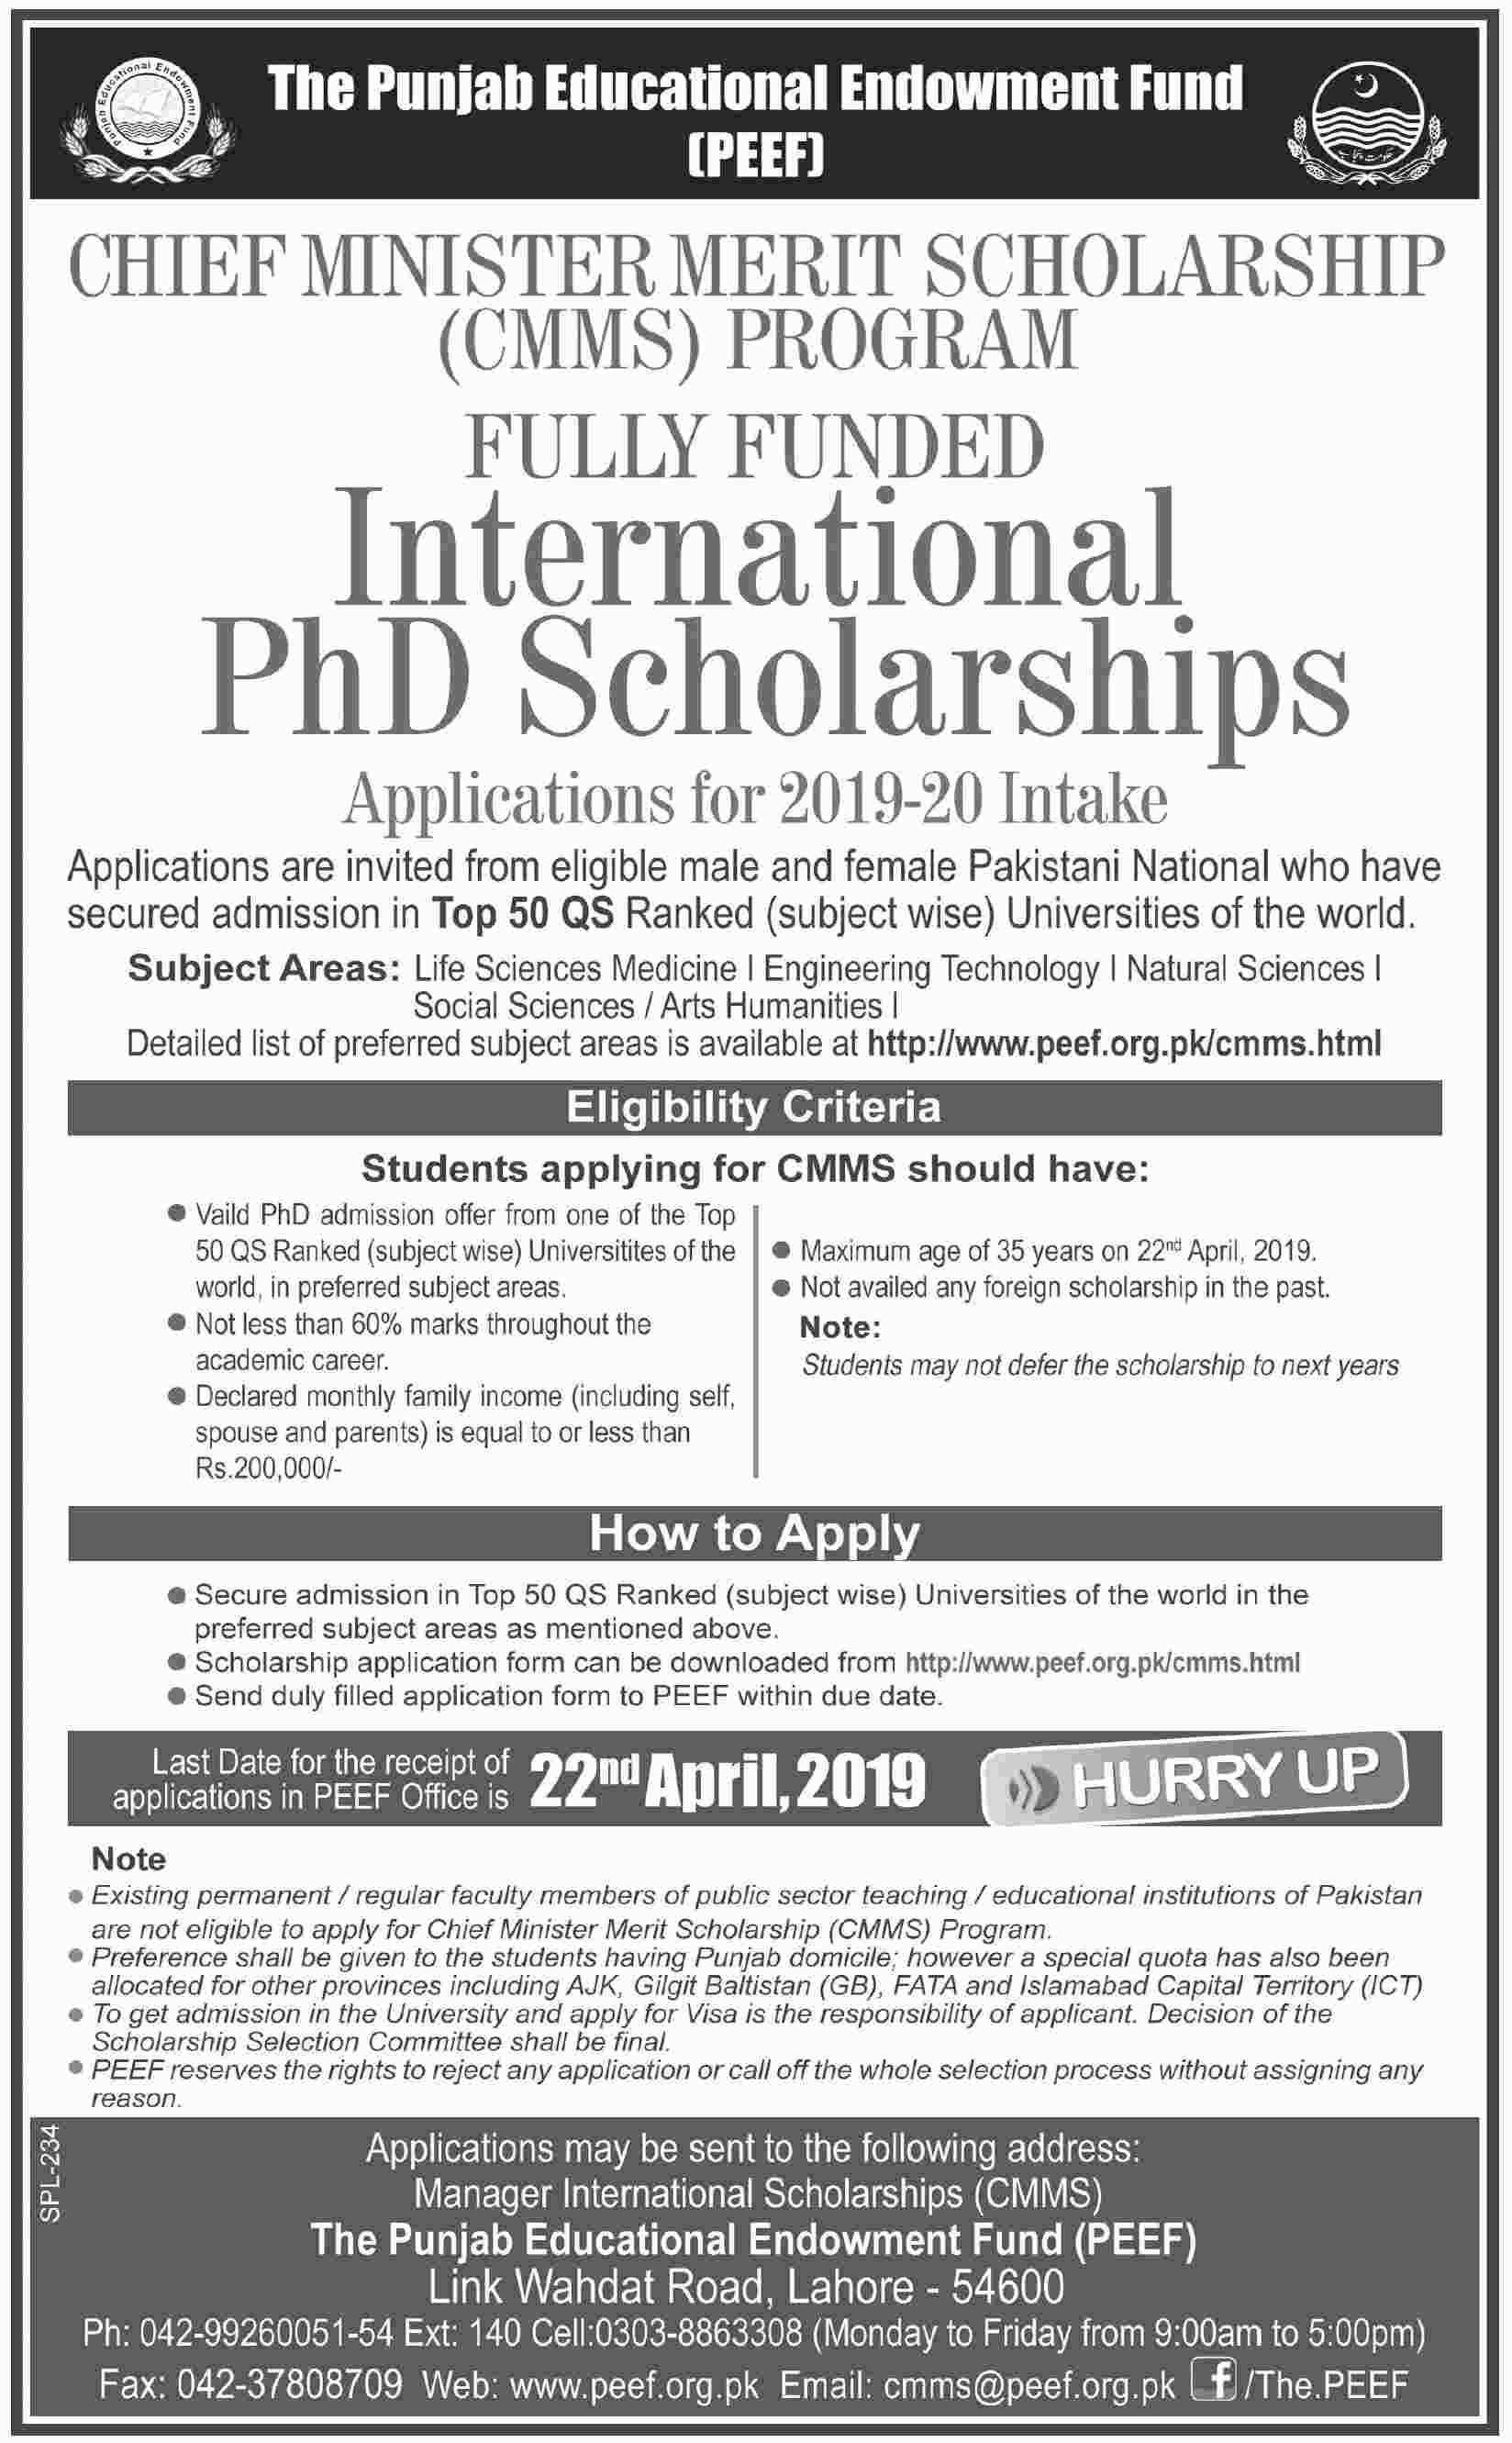 Chief Minister Merit Scholarship (CMMS) - Fully Funded International PhD Scholarships